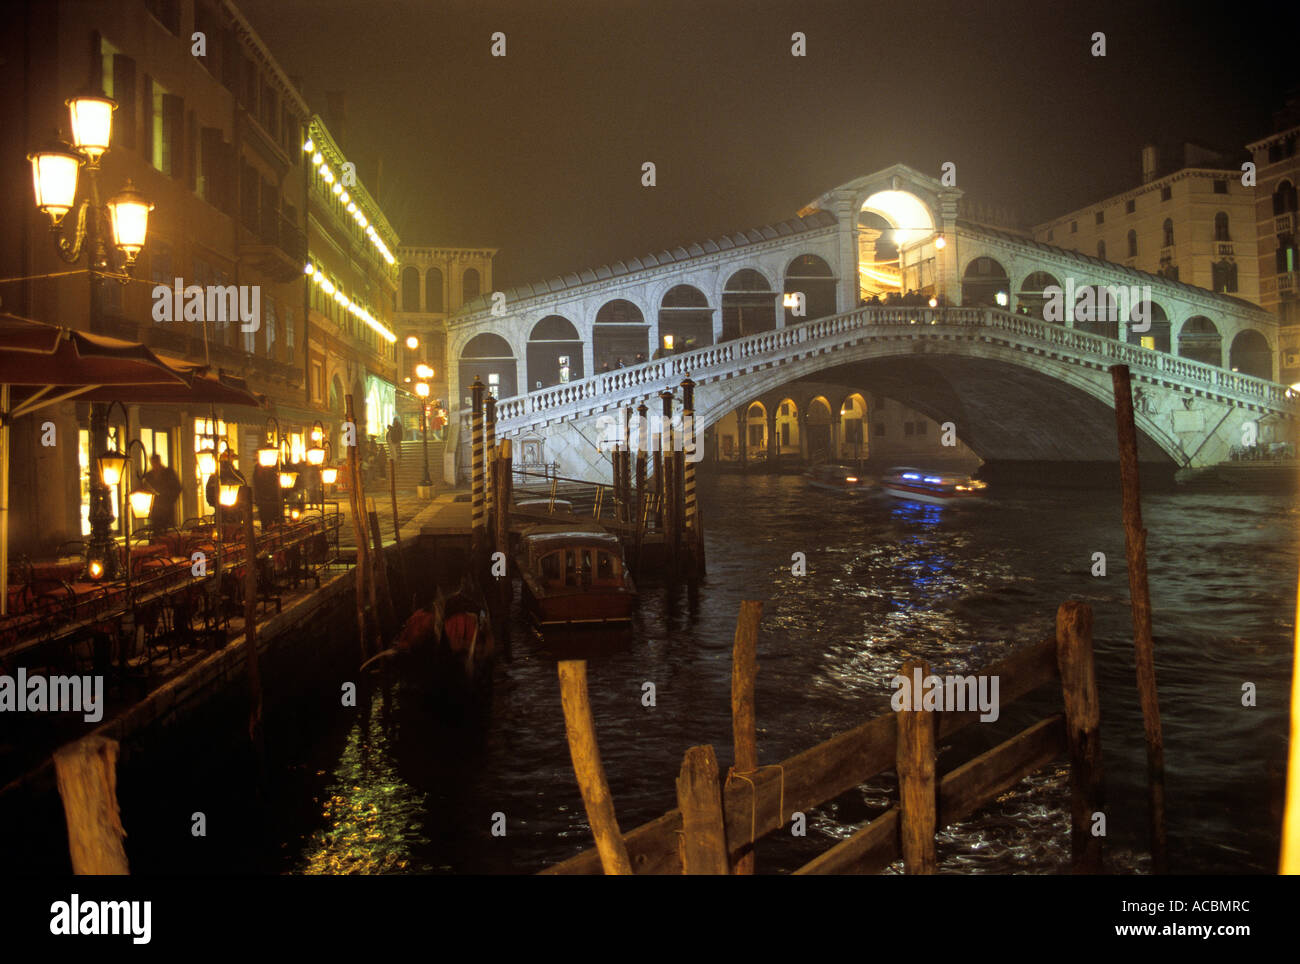 venice region essay The italian city of venice is prone to frequent flooding because it has sunk five inches over the last century, but it is also grappling with a new challenge: sea-level rise, caused by climate.